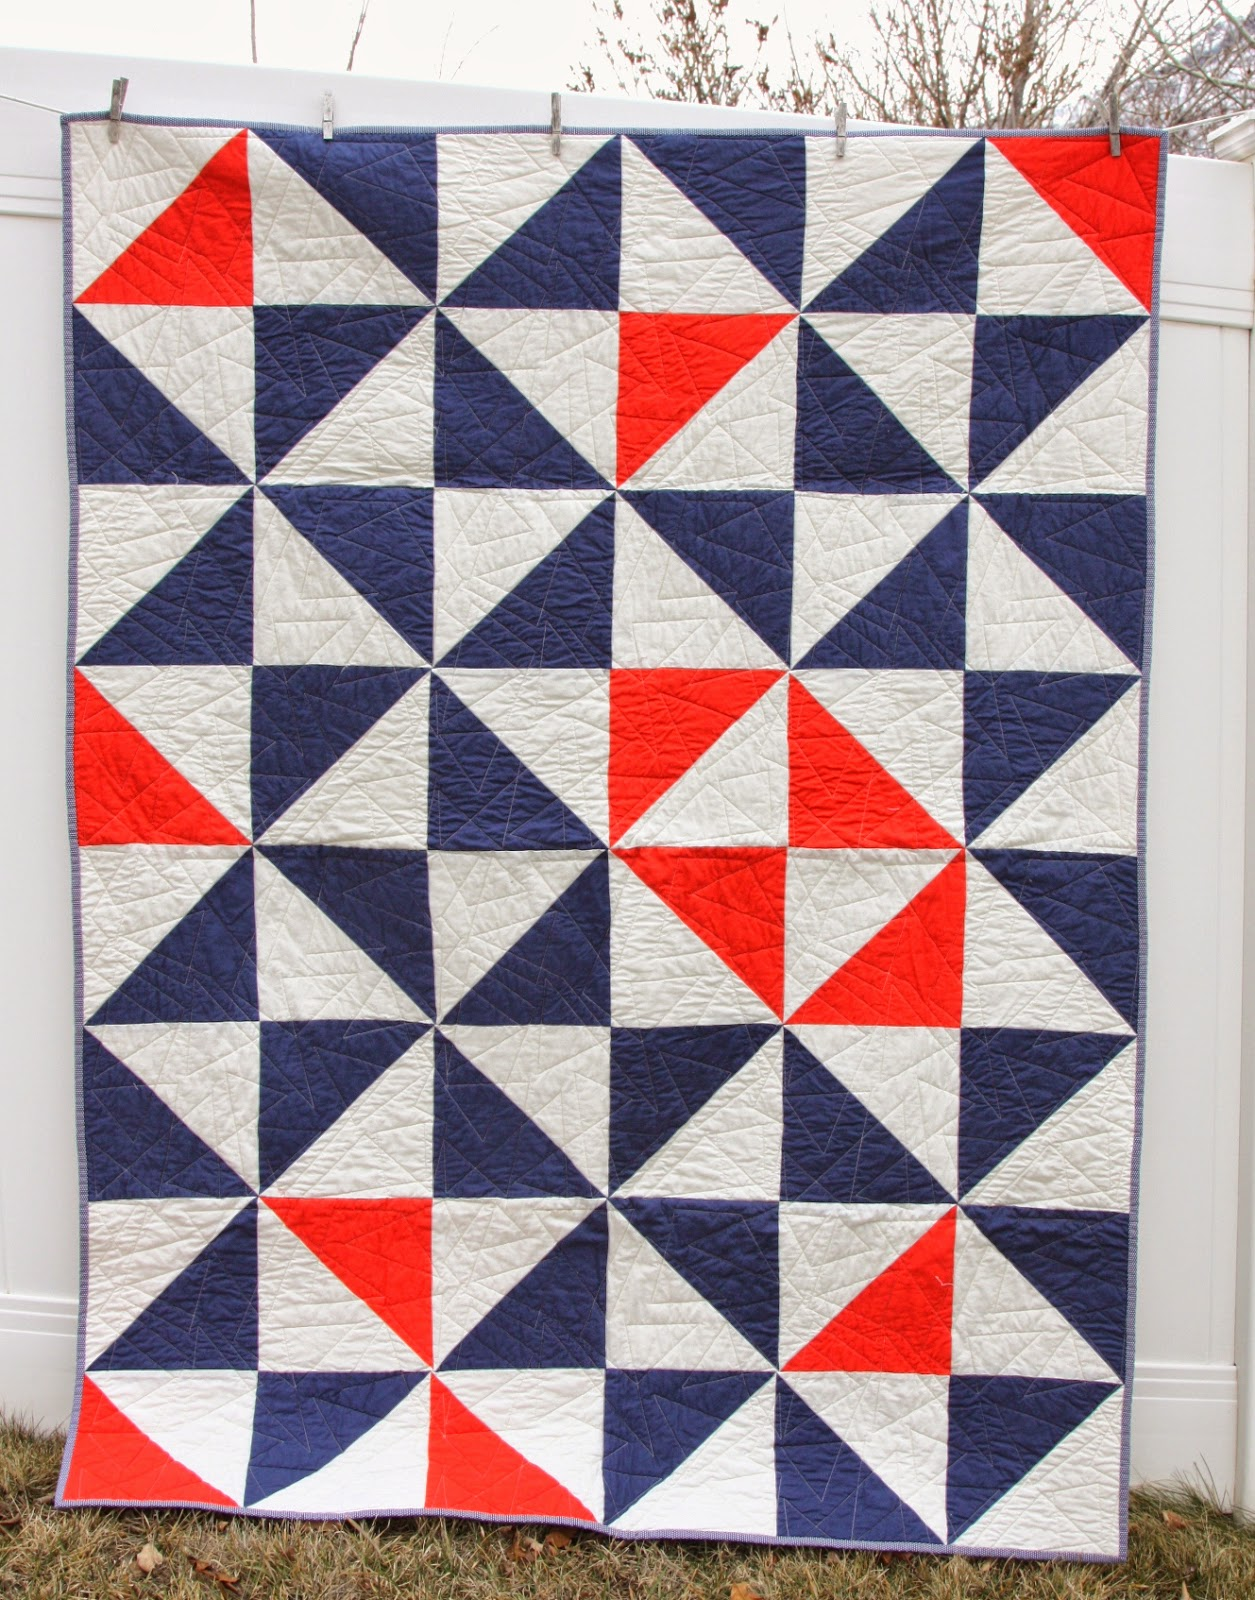 Quilt Designs With Triangles : Half Square Triangle baby quilt pattern